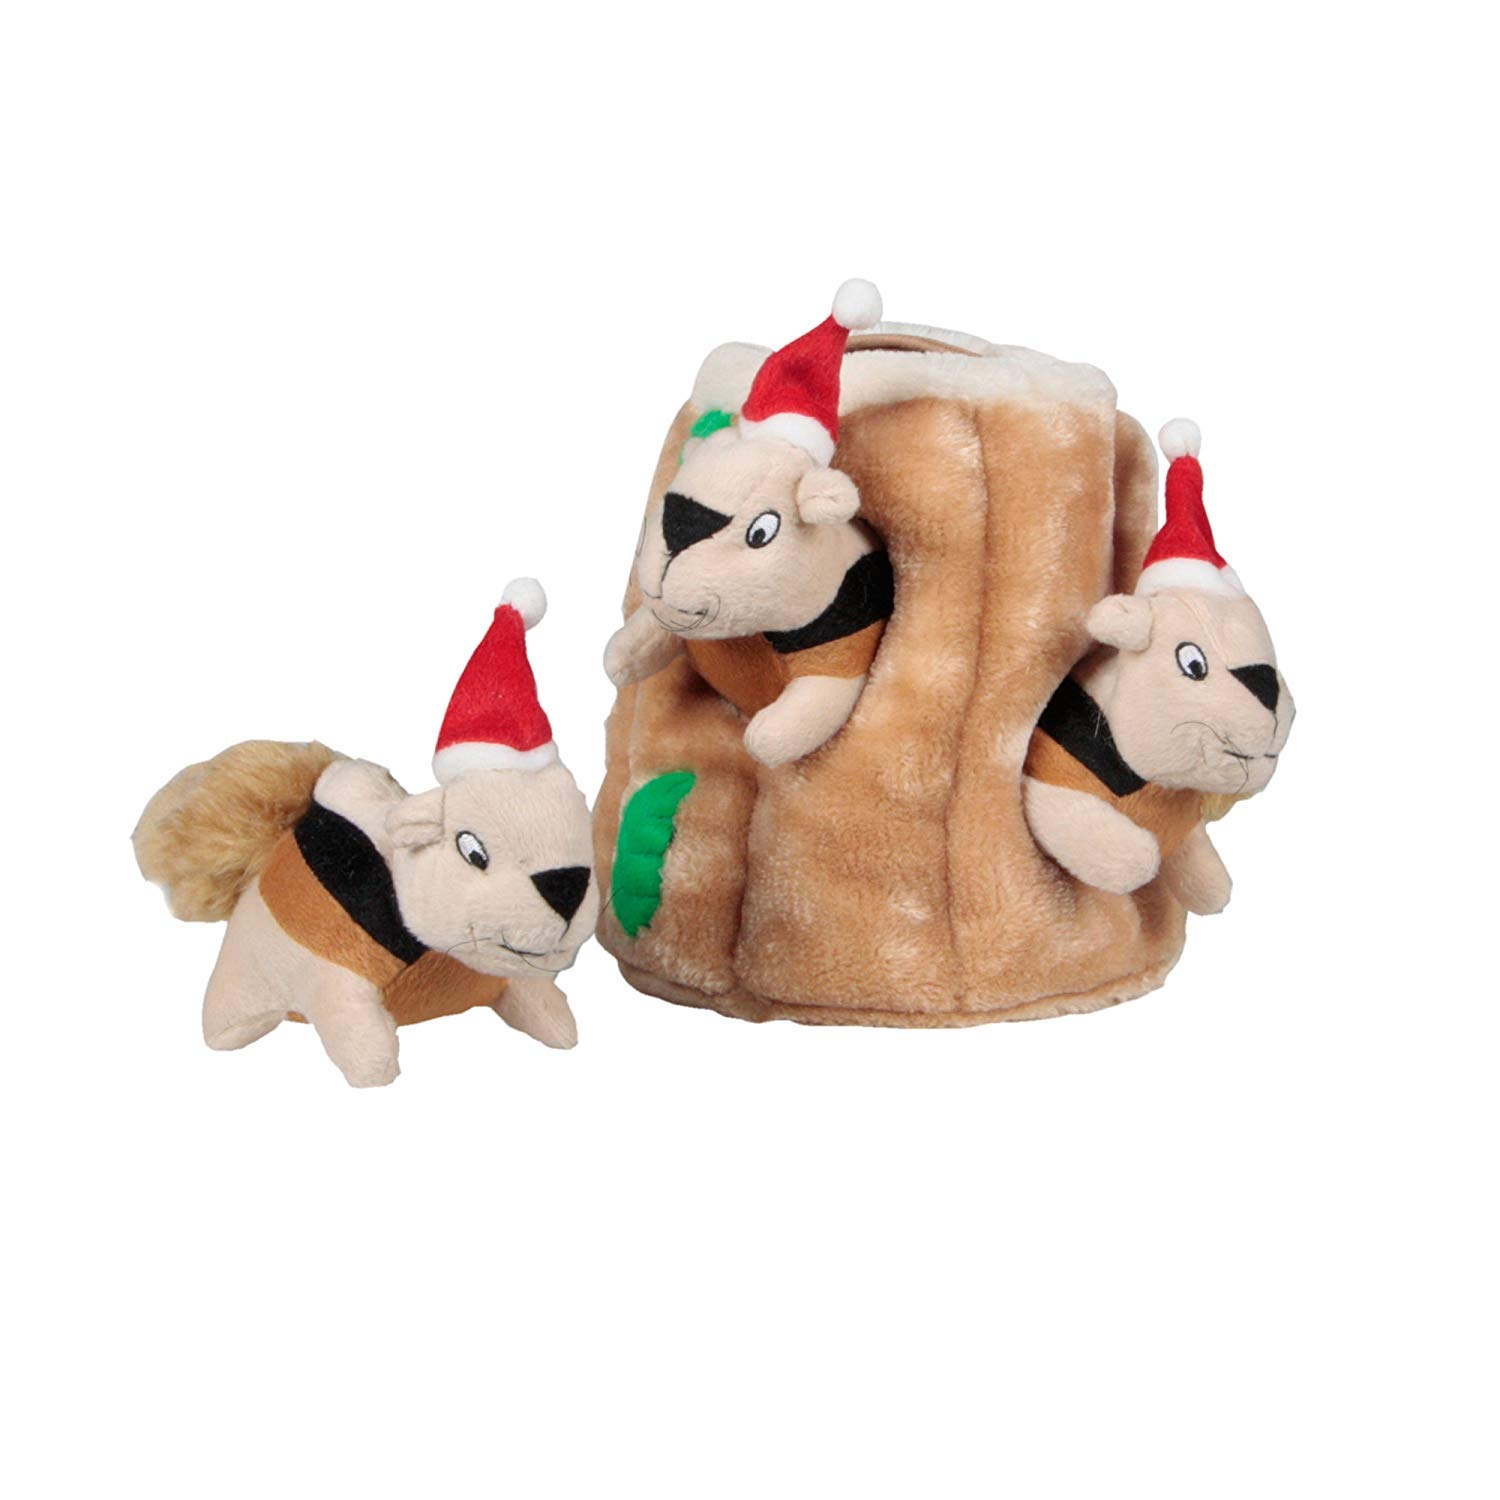 Kyjen 2575 Holiday Hide-A-Squirrel Interactive Squeaking Plush Dog Toys, Large, Brown